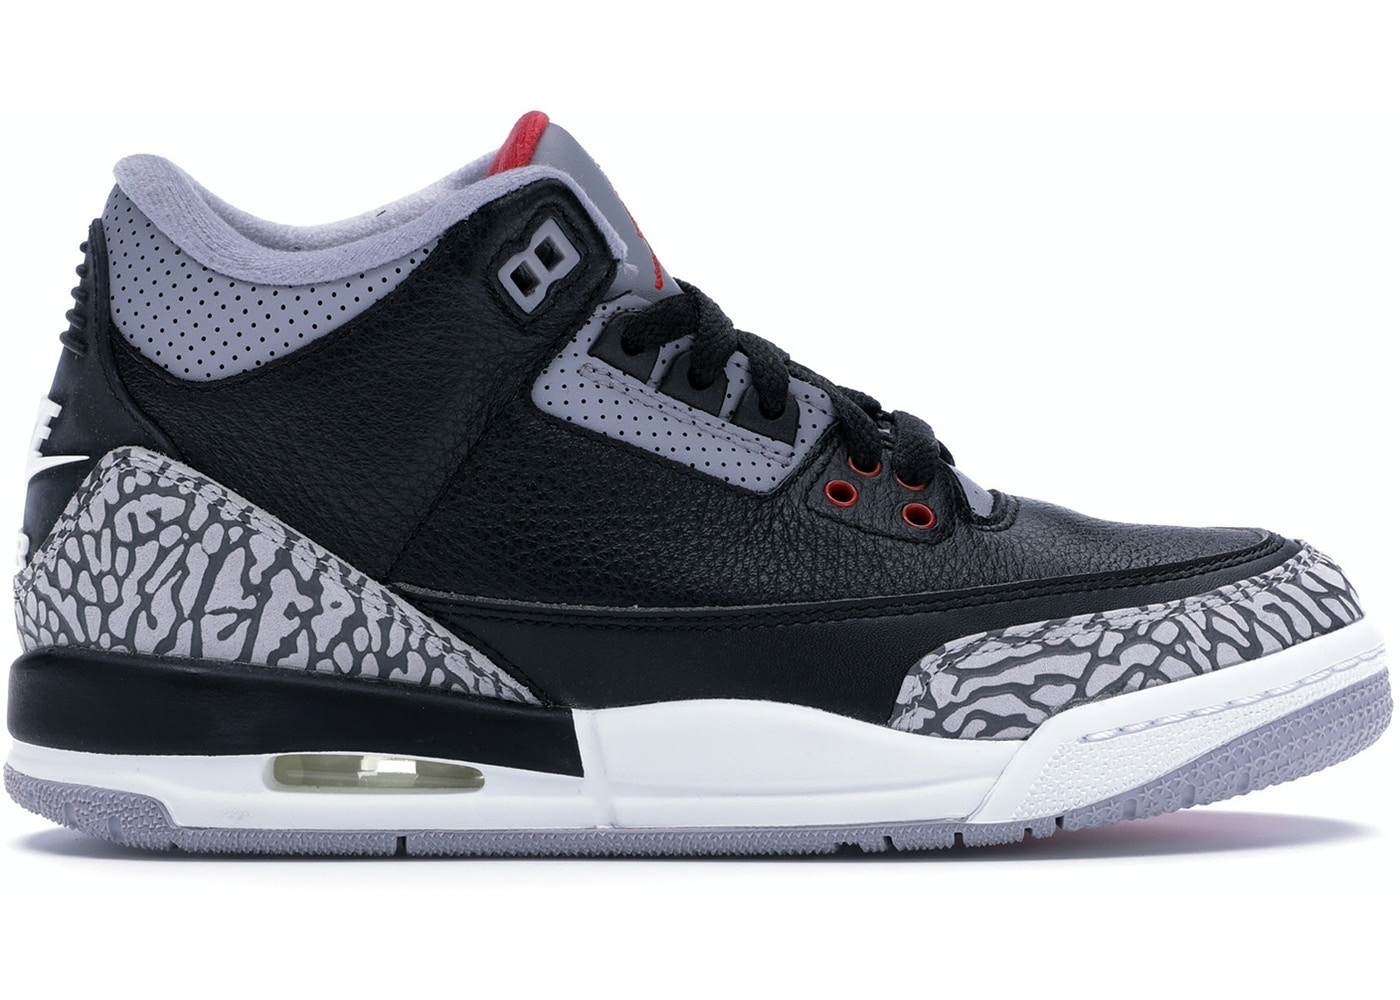 74f2d5d65d5 Buy Air Jordan 3 Shoes & Deadstock Sneakers